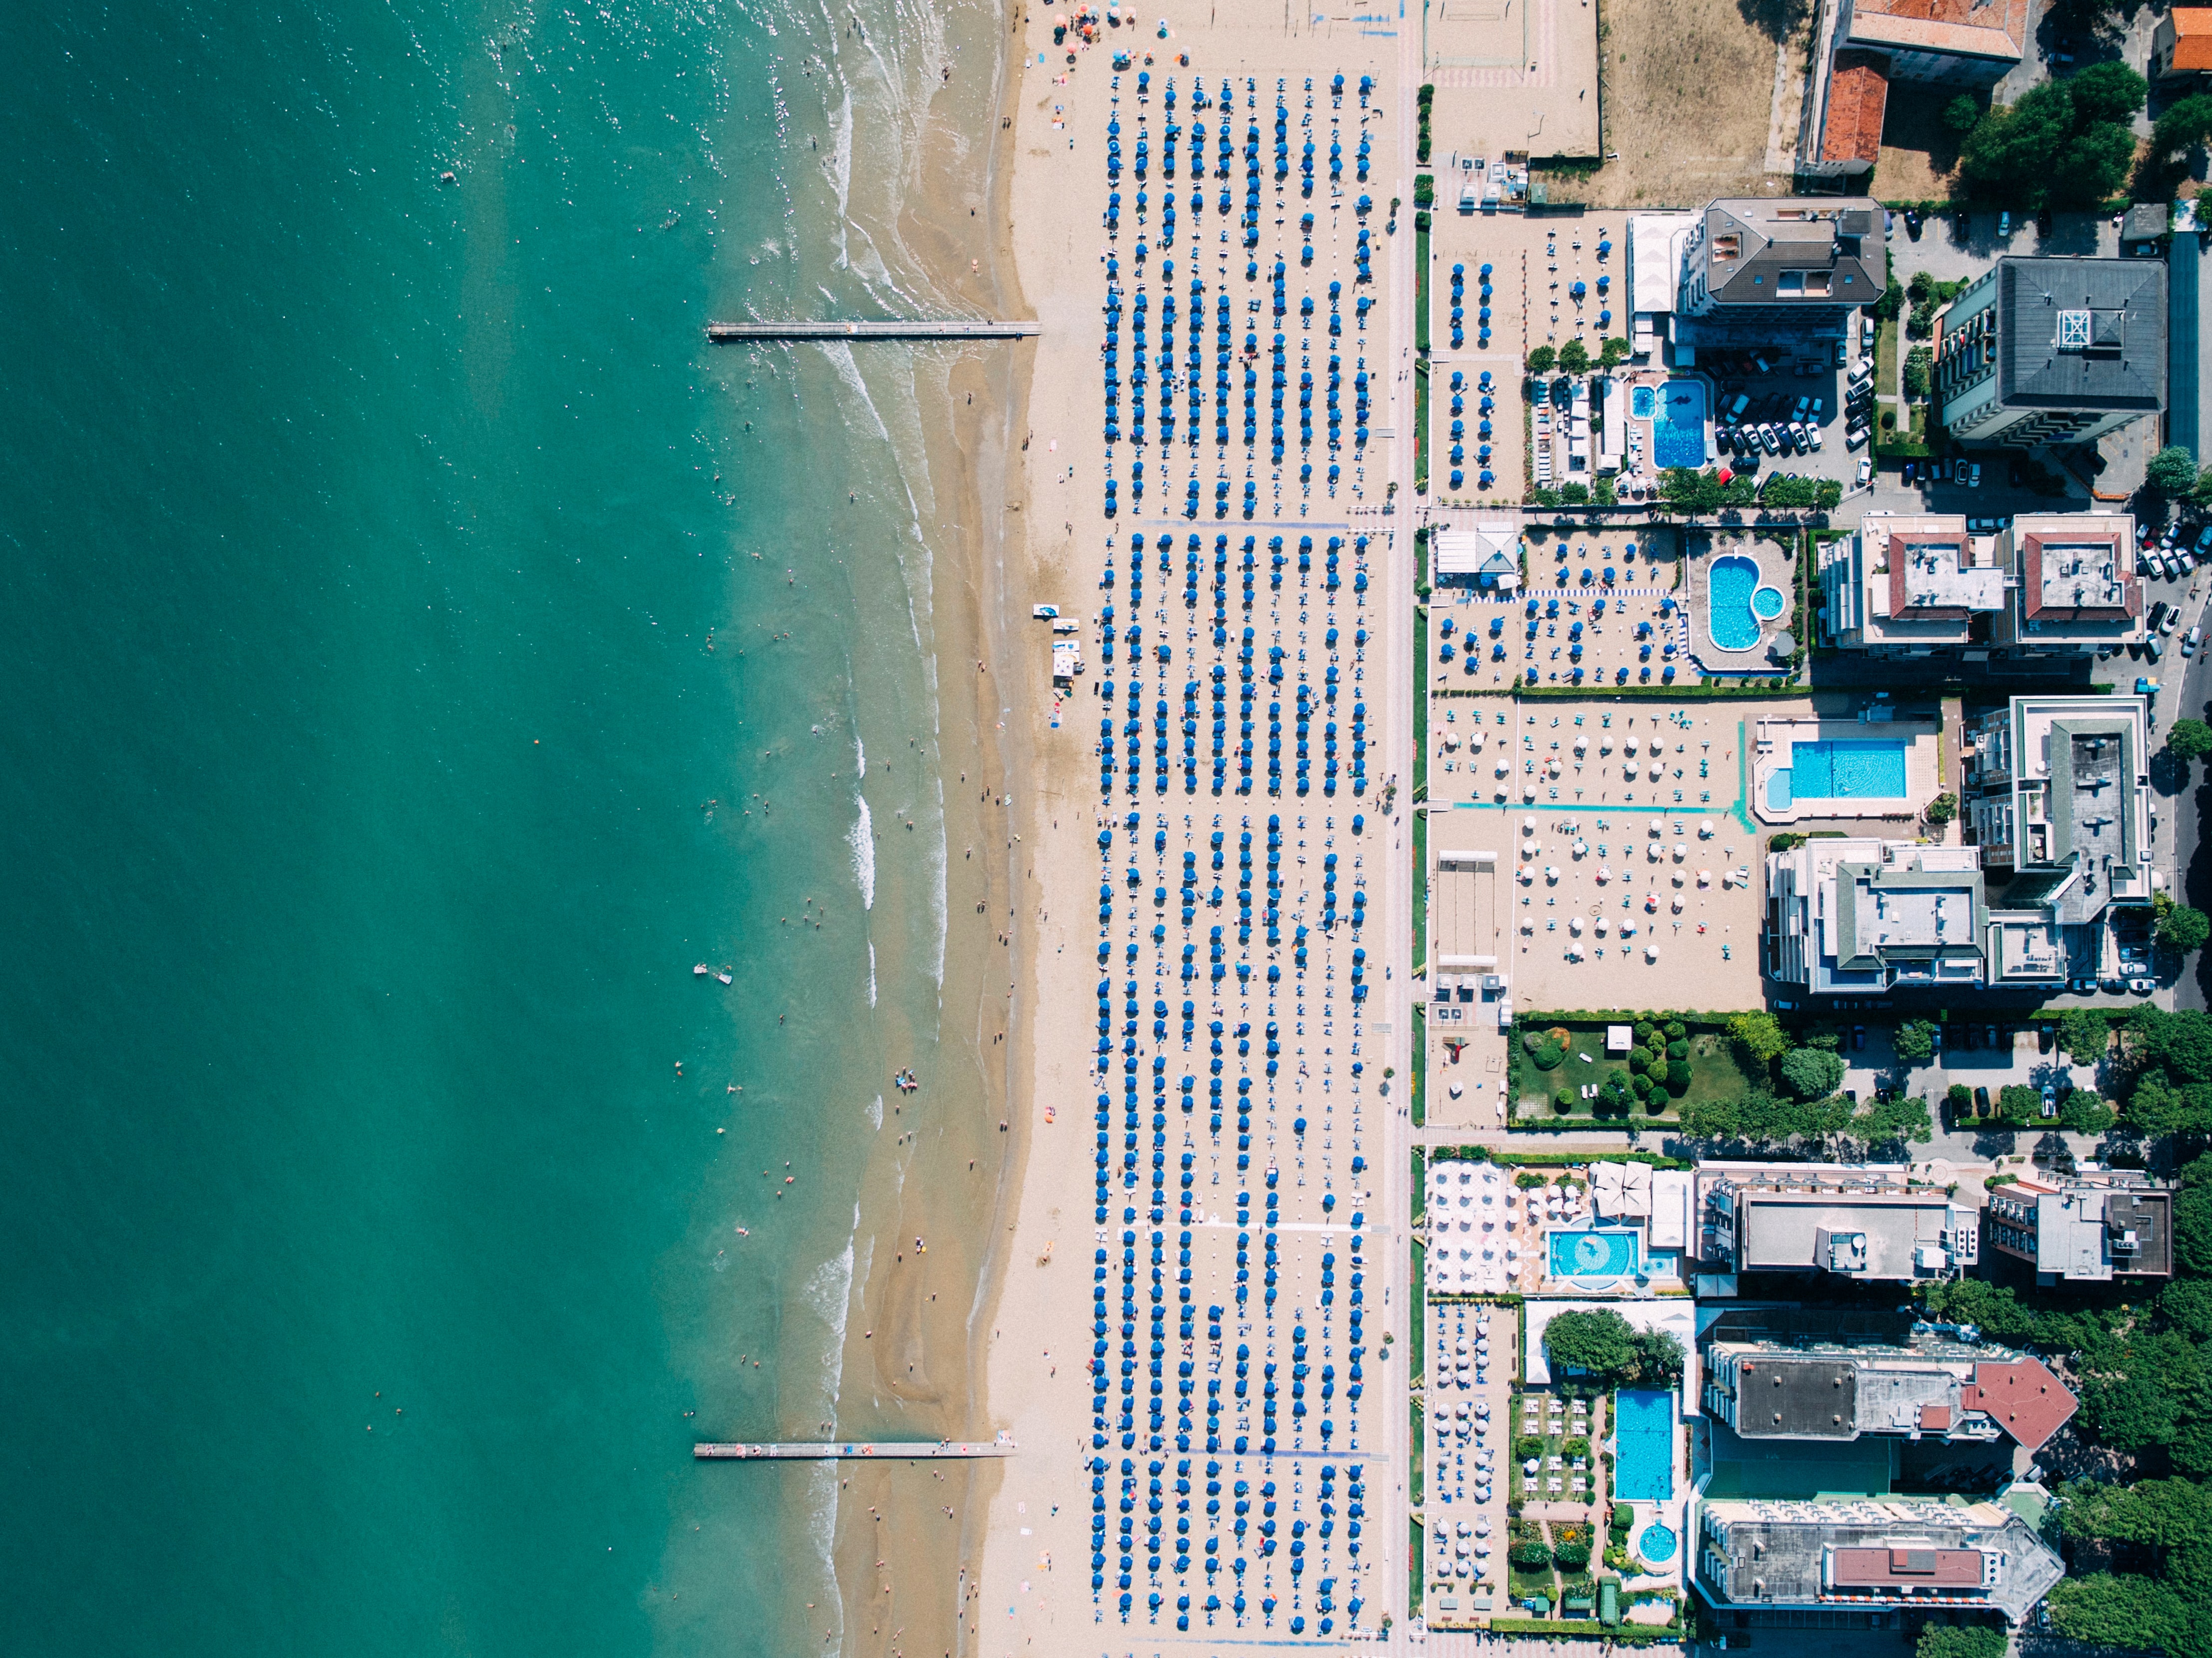 Drone aerial view of coastal resorts and an ocean sand beach in Lido di Jesolo